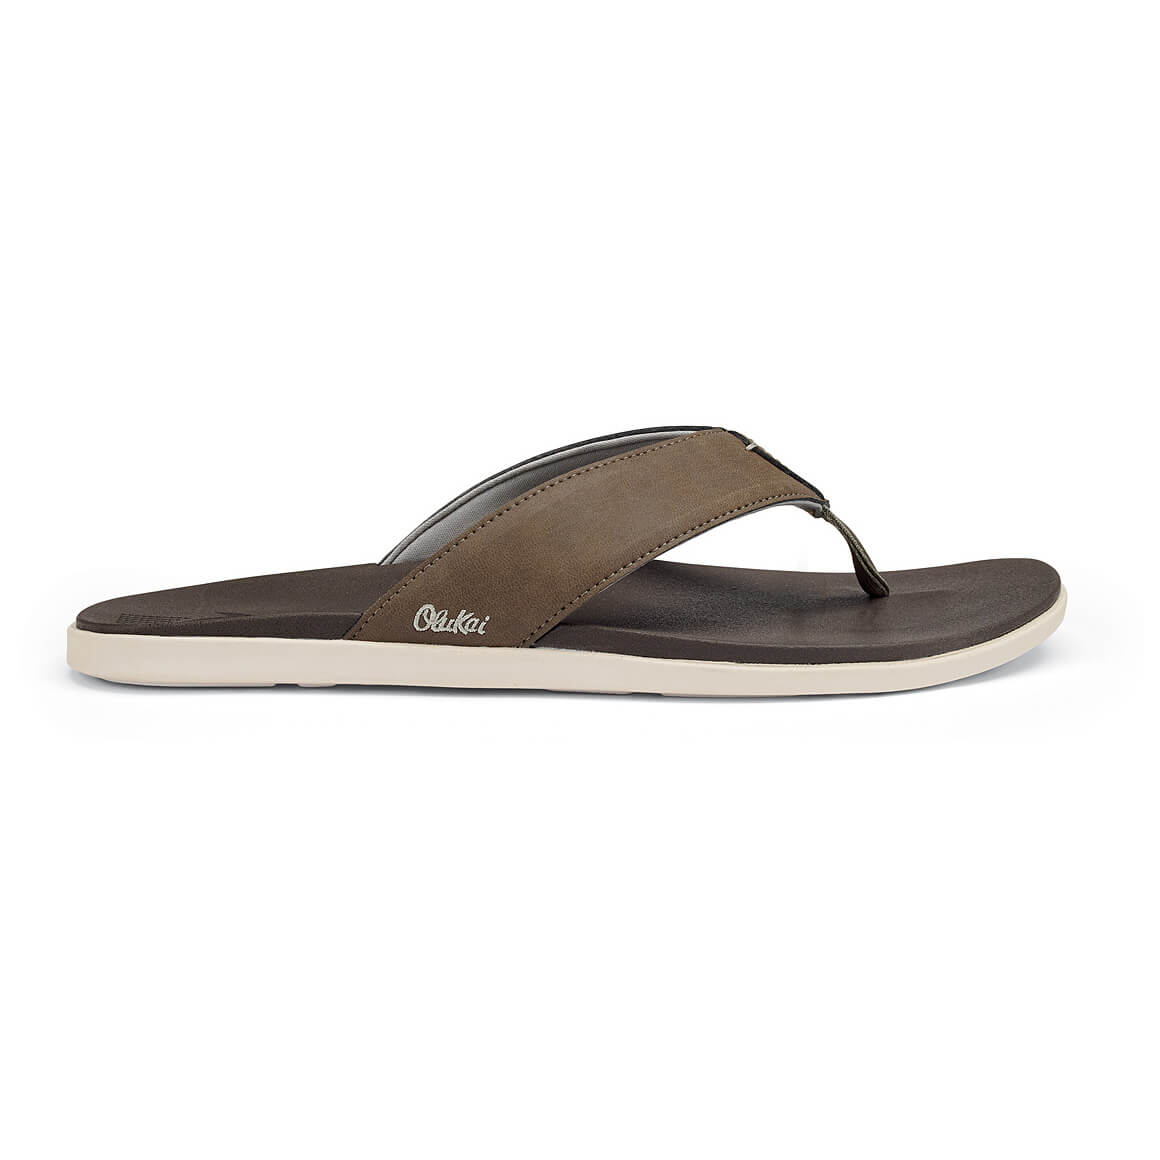 Where To Buy Olukai Shoes In Canada